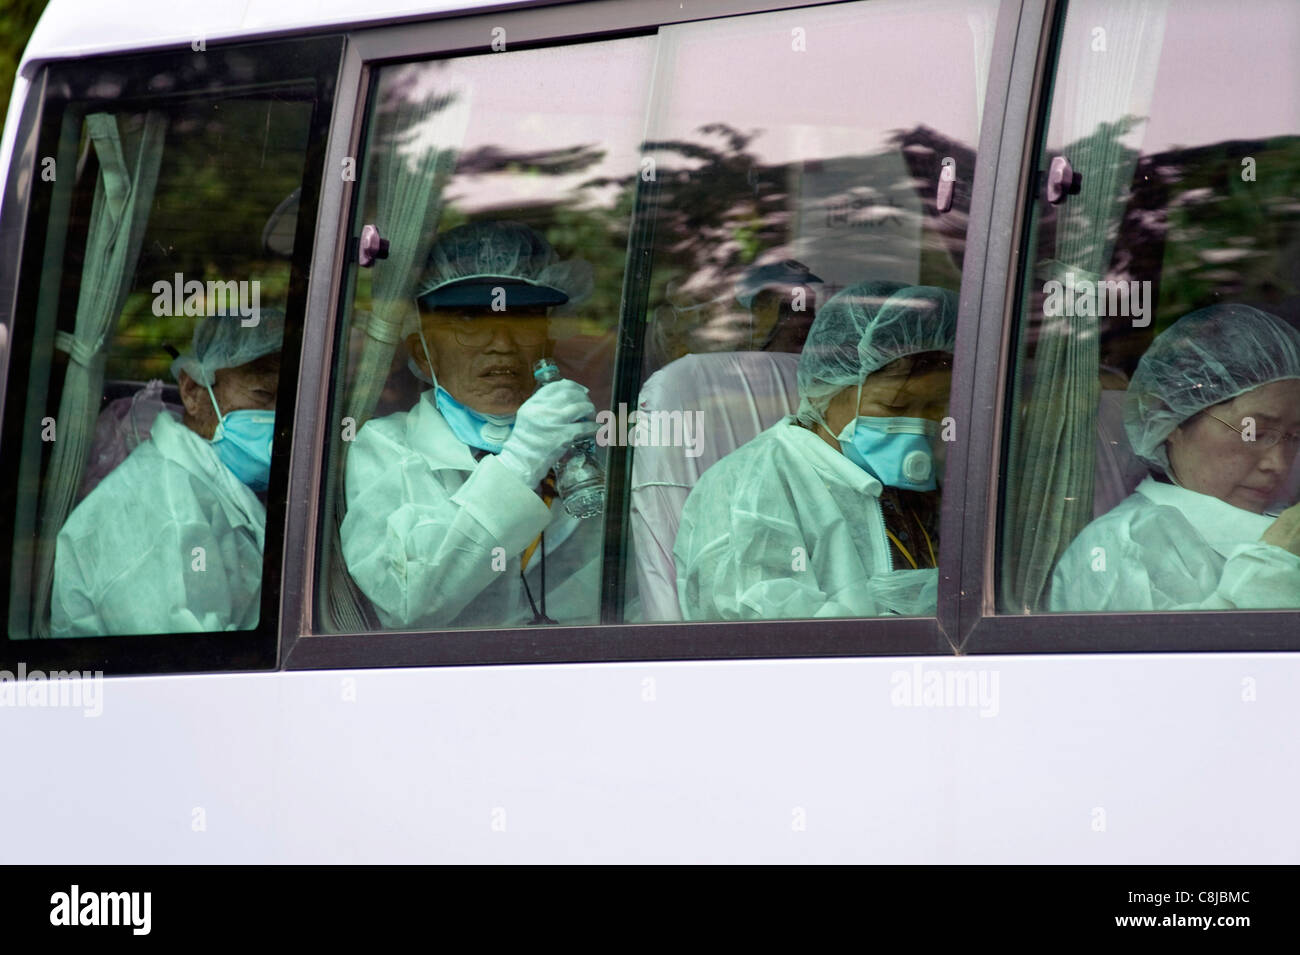 Residents sit in a bus after being allowed briefly to return to their homes in Okuma, about 1.5 km from the No. - Stock Image